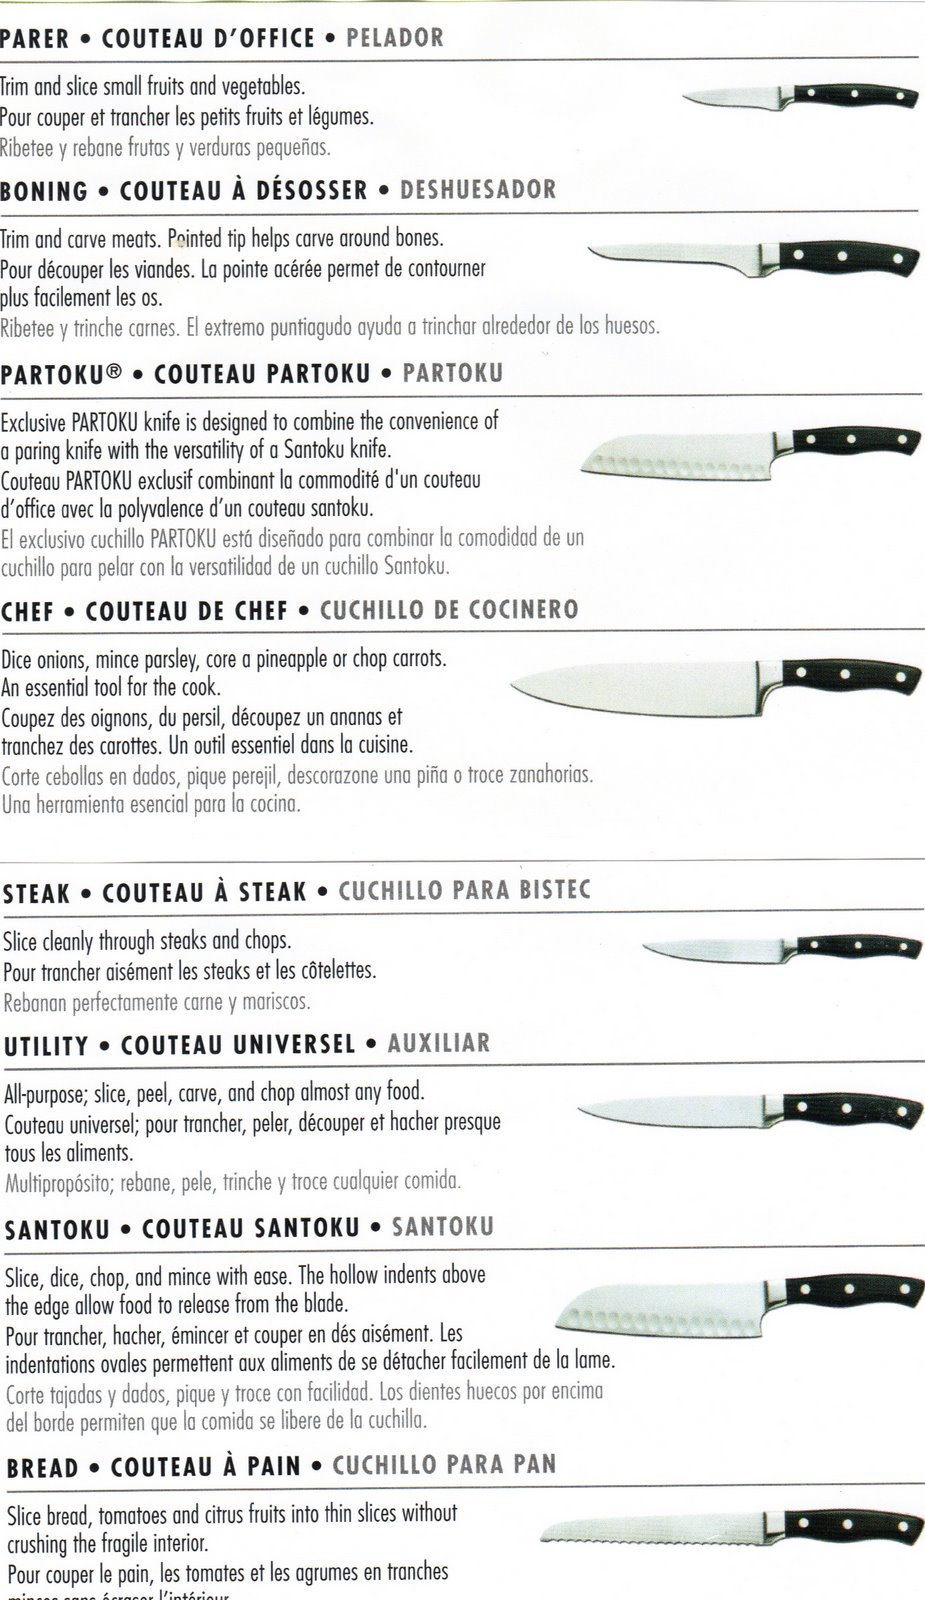 m j s elegant cuisine kitchen knife use guide